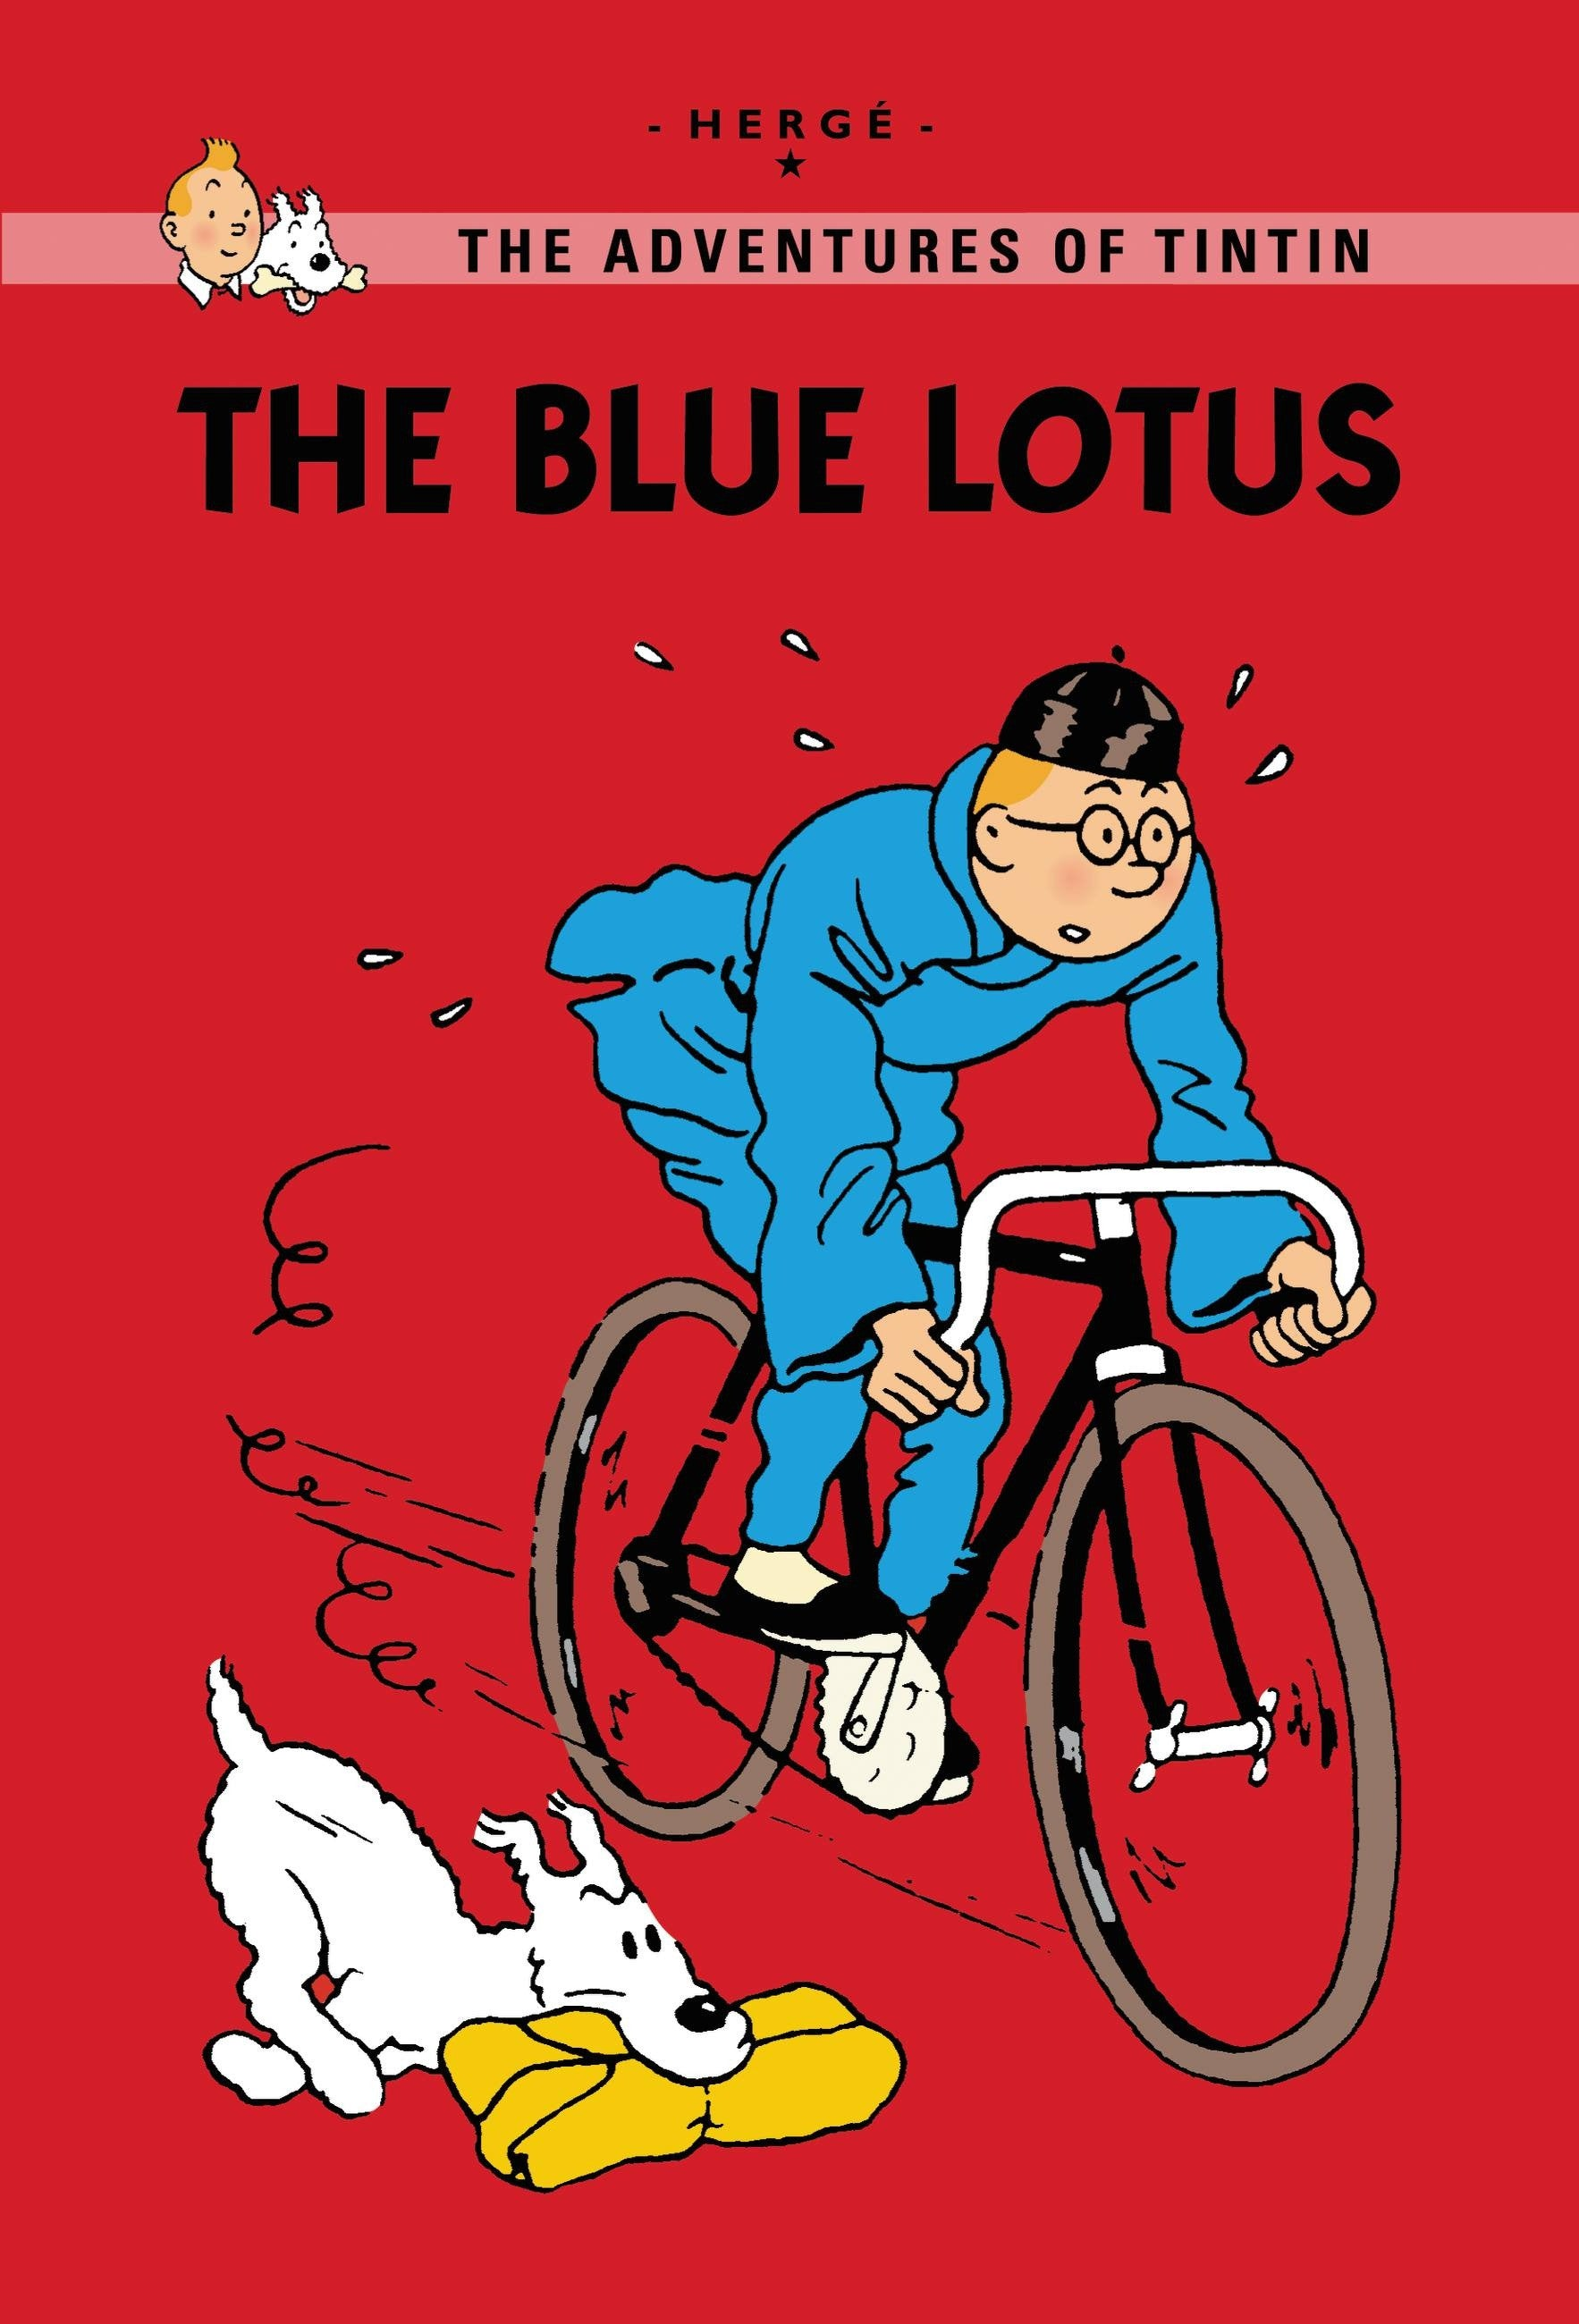 TINTIN YOUNG READERS: The Blue Lotus